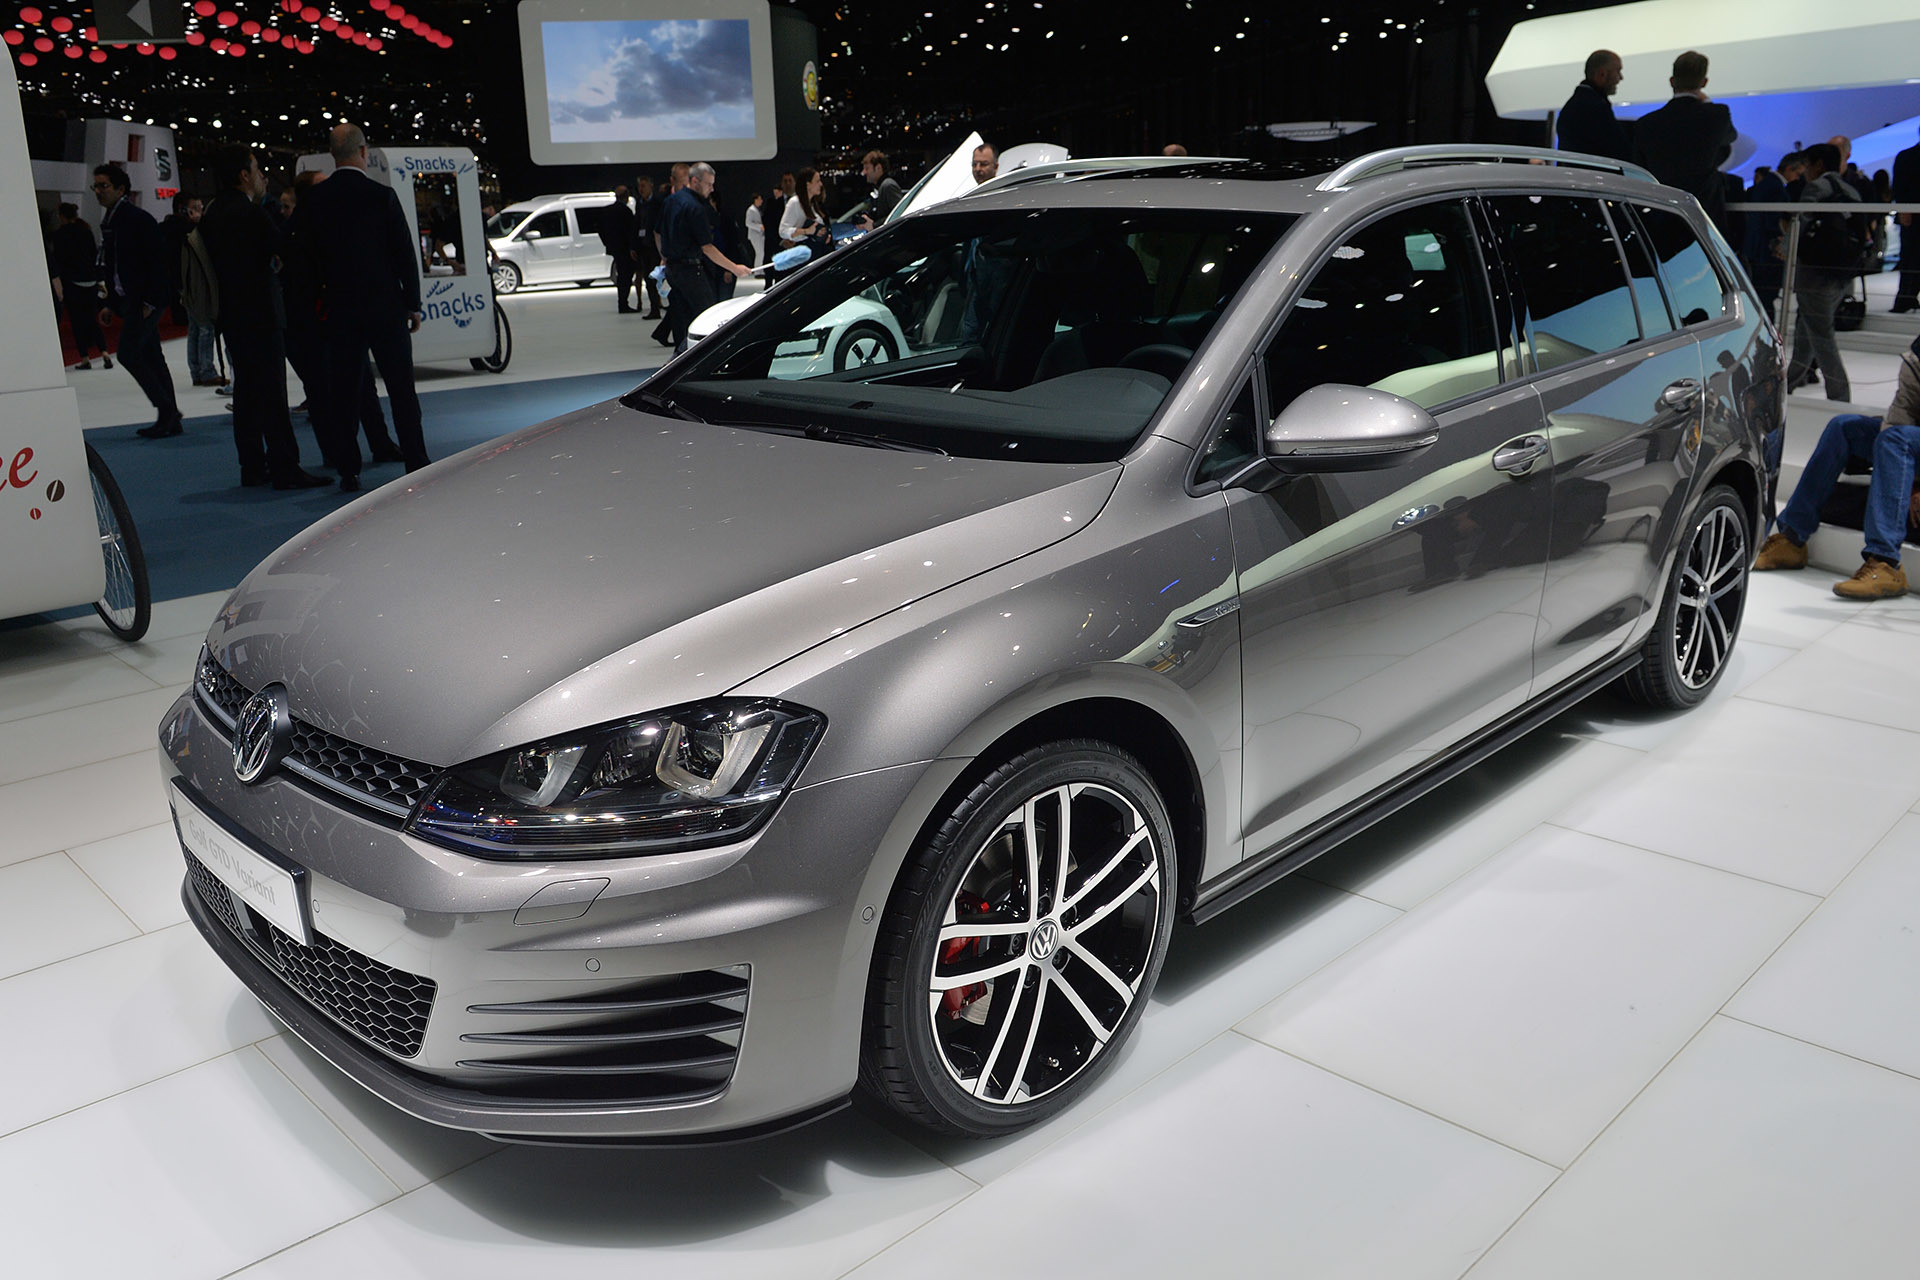 2015 volkswagen golf gtd variant geneva 2015 photo. Black Bedroom Furniture Sets. Home Design Ideas